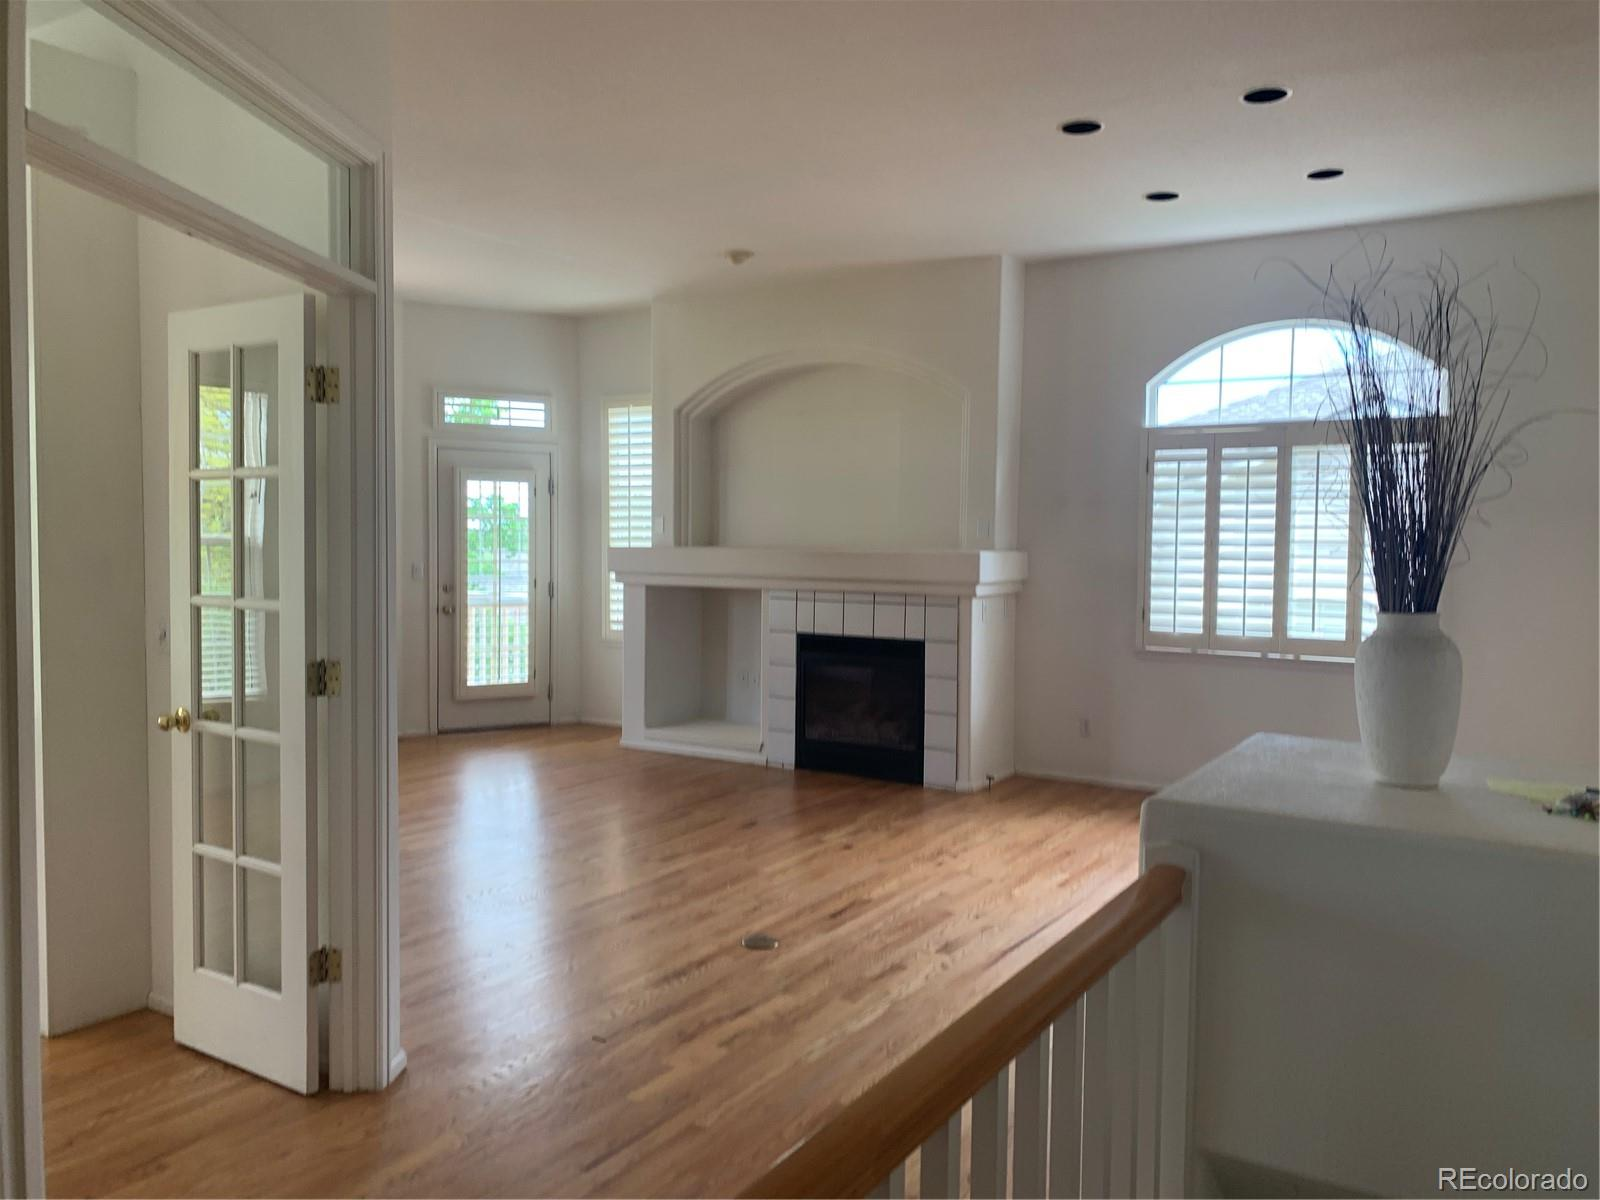 MLS# 5529694 - 4 - 9135 Woodland Drive, Highlands Ranch, CO 80126